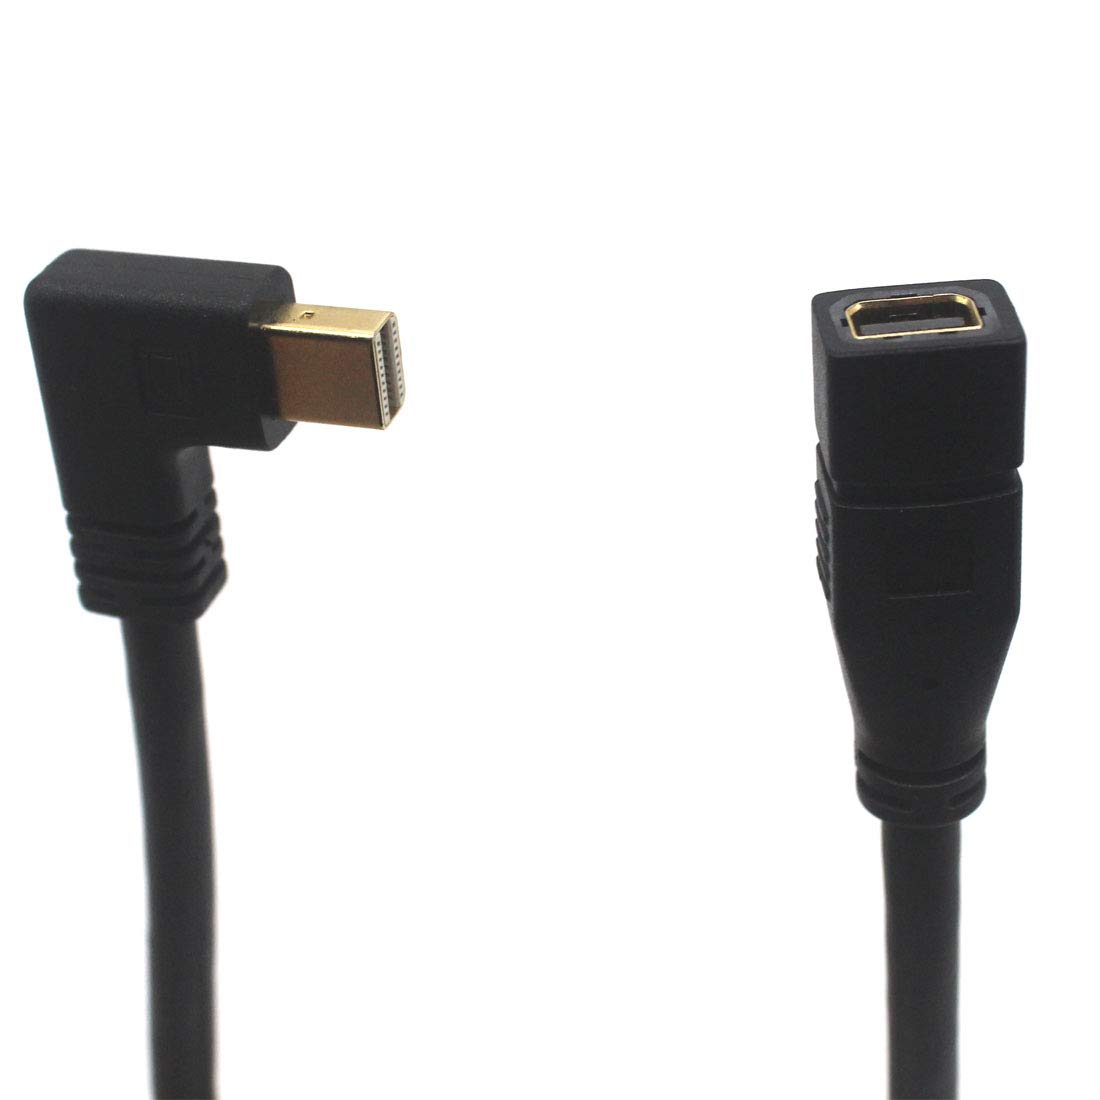 F Mini DP to M Mini DP up Laptop Mini DP Extension Cable Aggice 90 Degree Gold Plated M Mini Displayport to F Mini Displayport Adapter 4K Resolution Converter,Thunderbolt to DP Compatible for PC